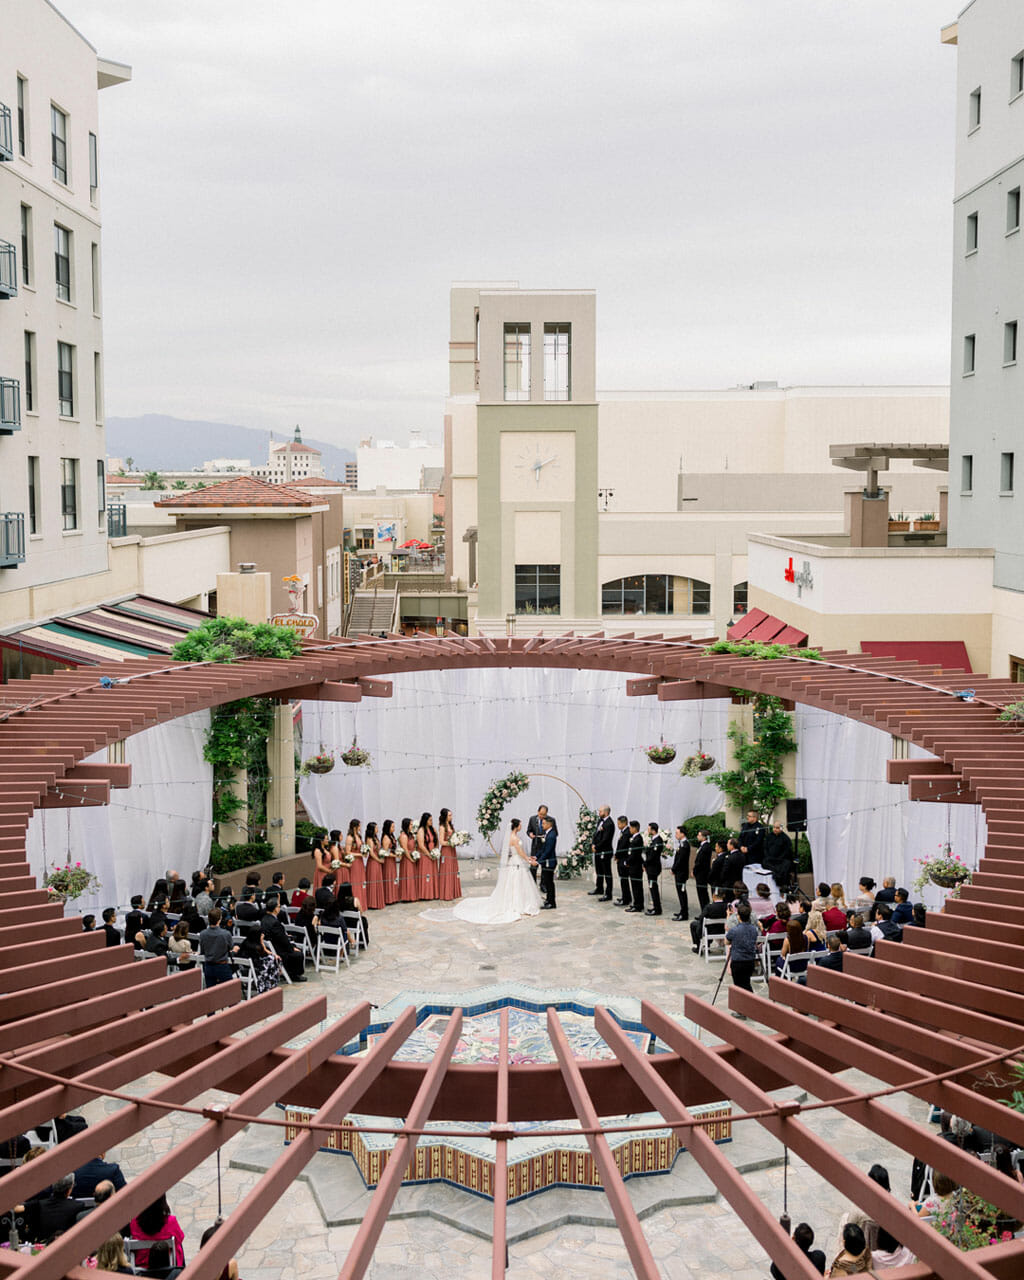 birds eye view of an outdoor wedding ceremony taking place on the NOOR terrace